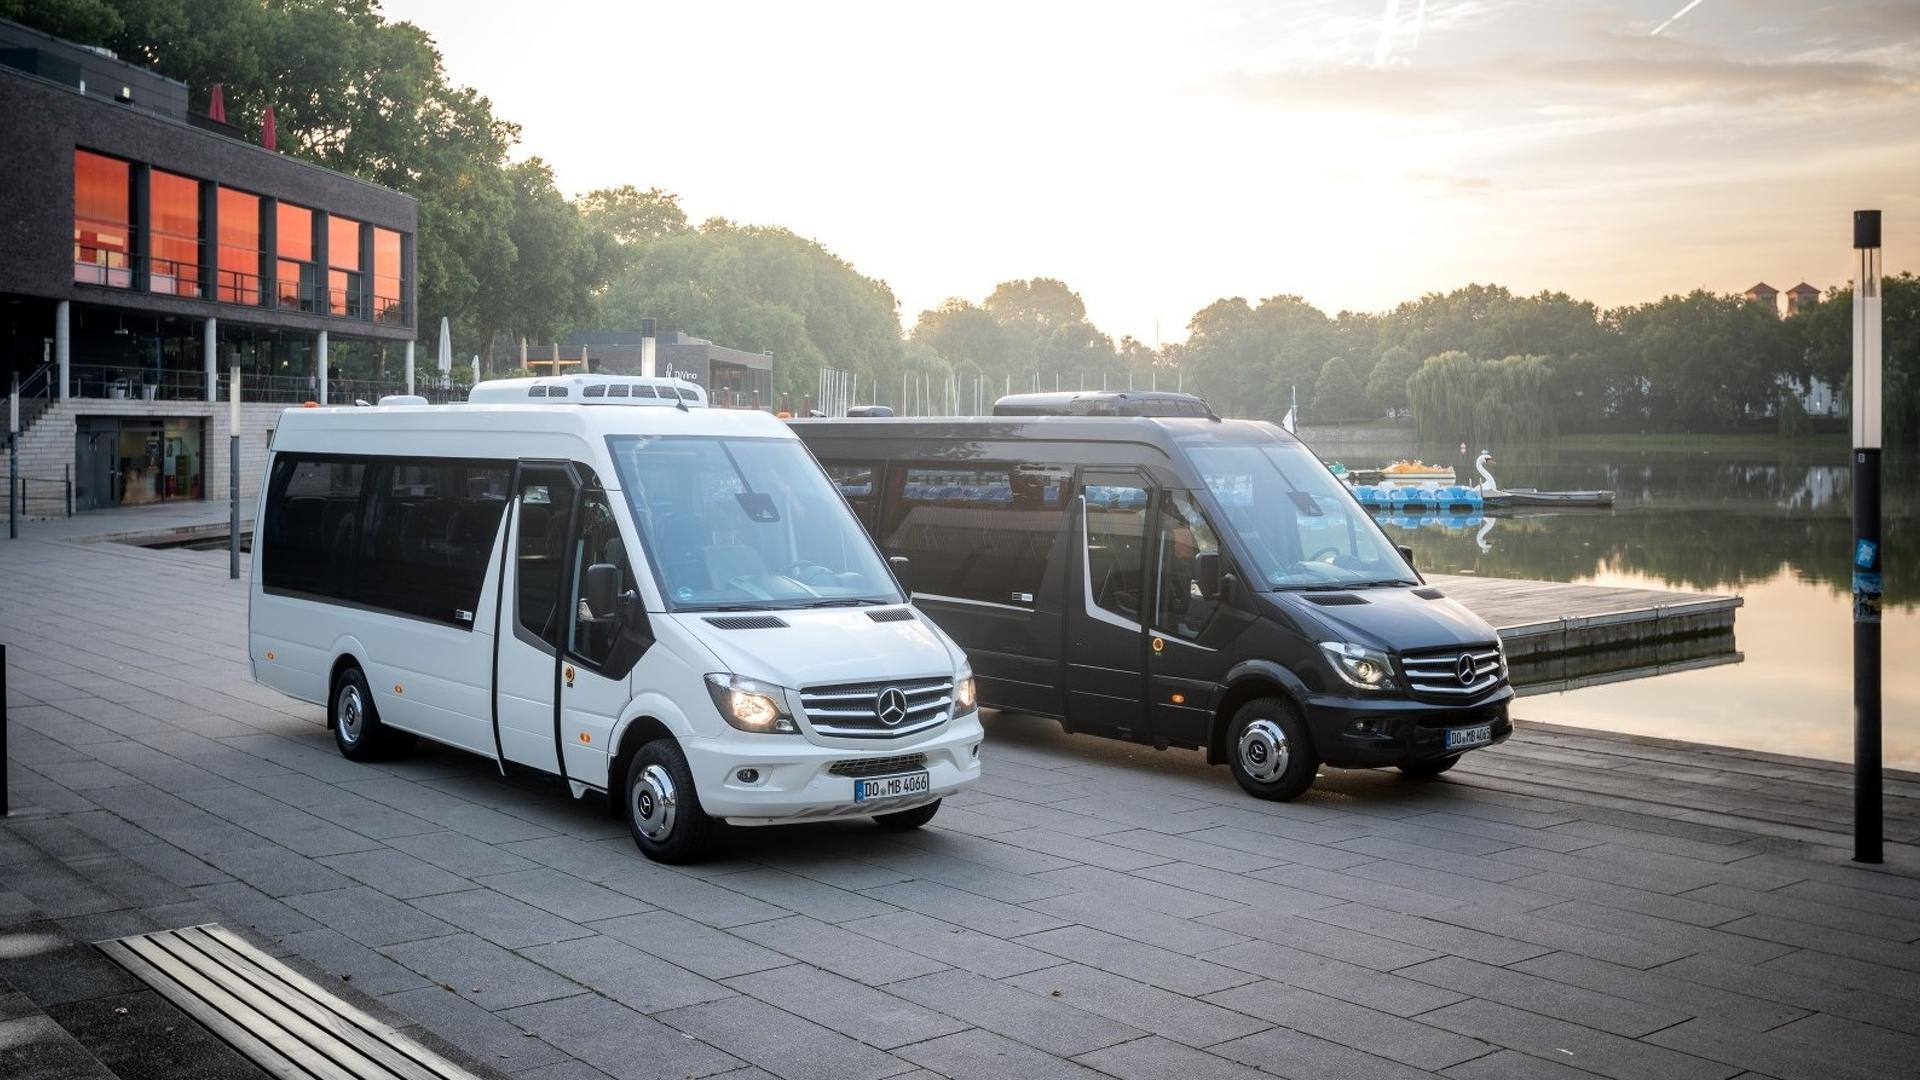 The minibuses based on the mercedes benz sprinter 2018 also gets to - The Minibuses Based On The Mercedes Benz Sprinter 2018 Also Gets To 31